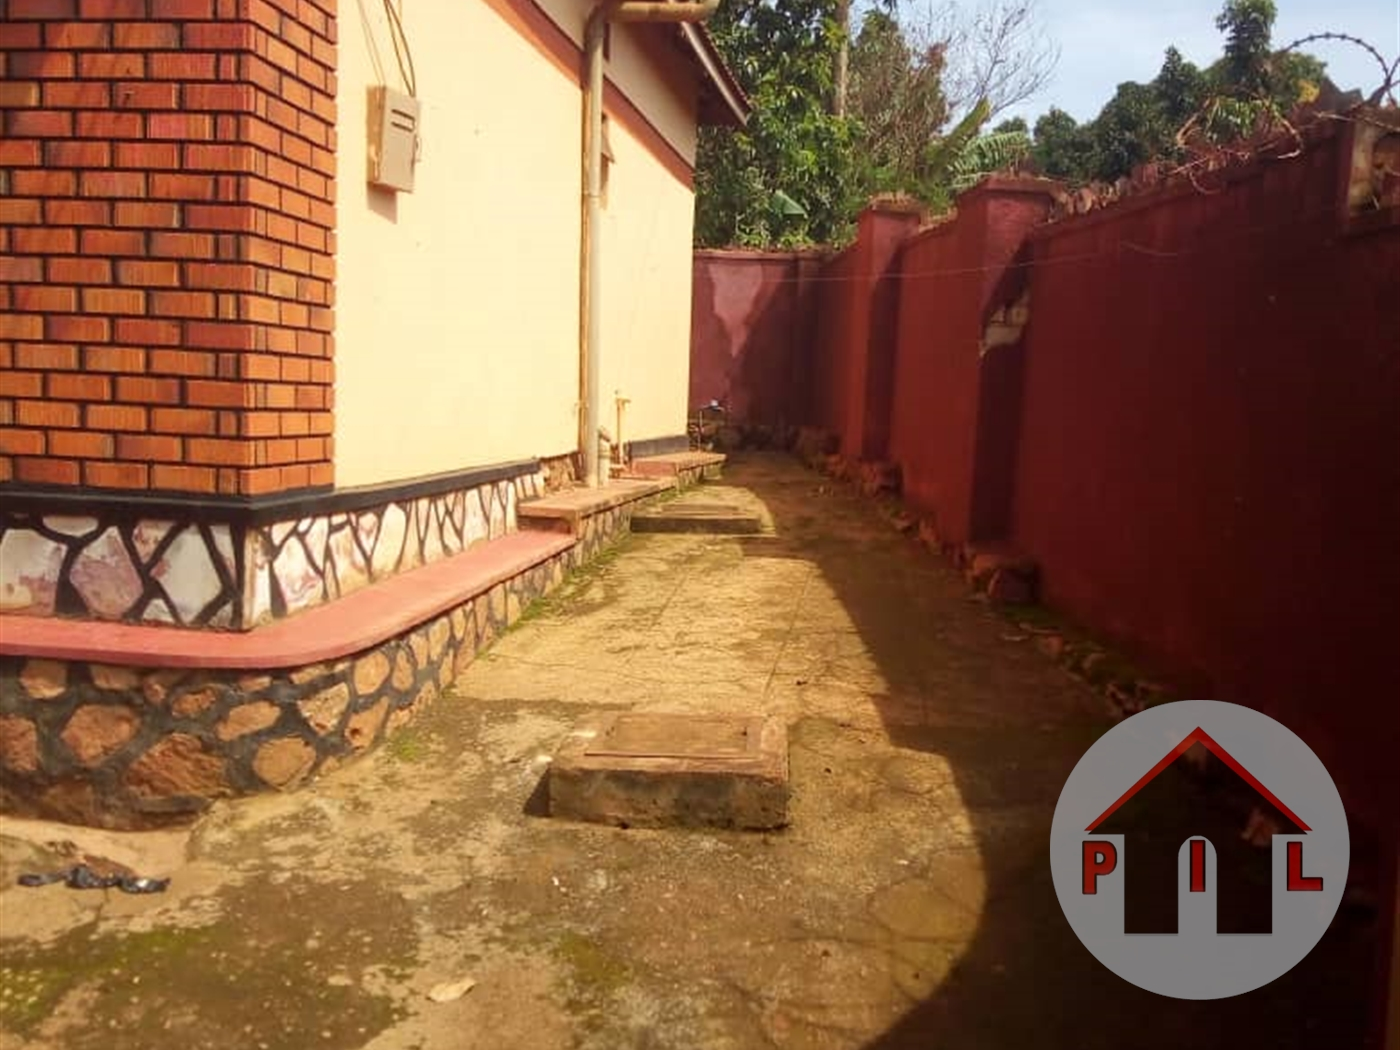 Rental units (for sale) for sale in Seguku Wakiso